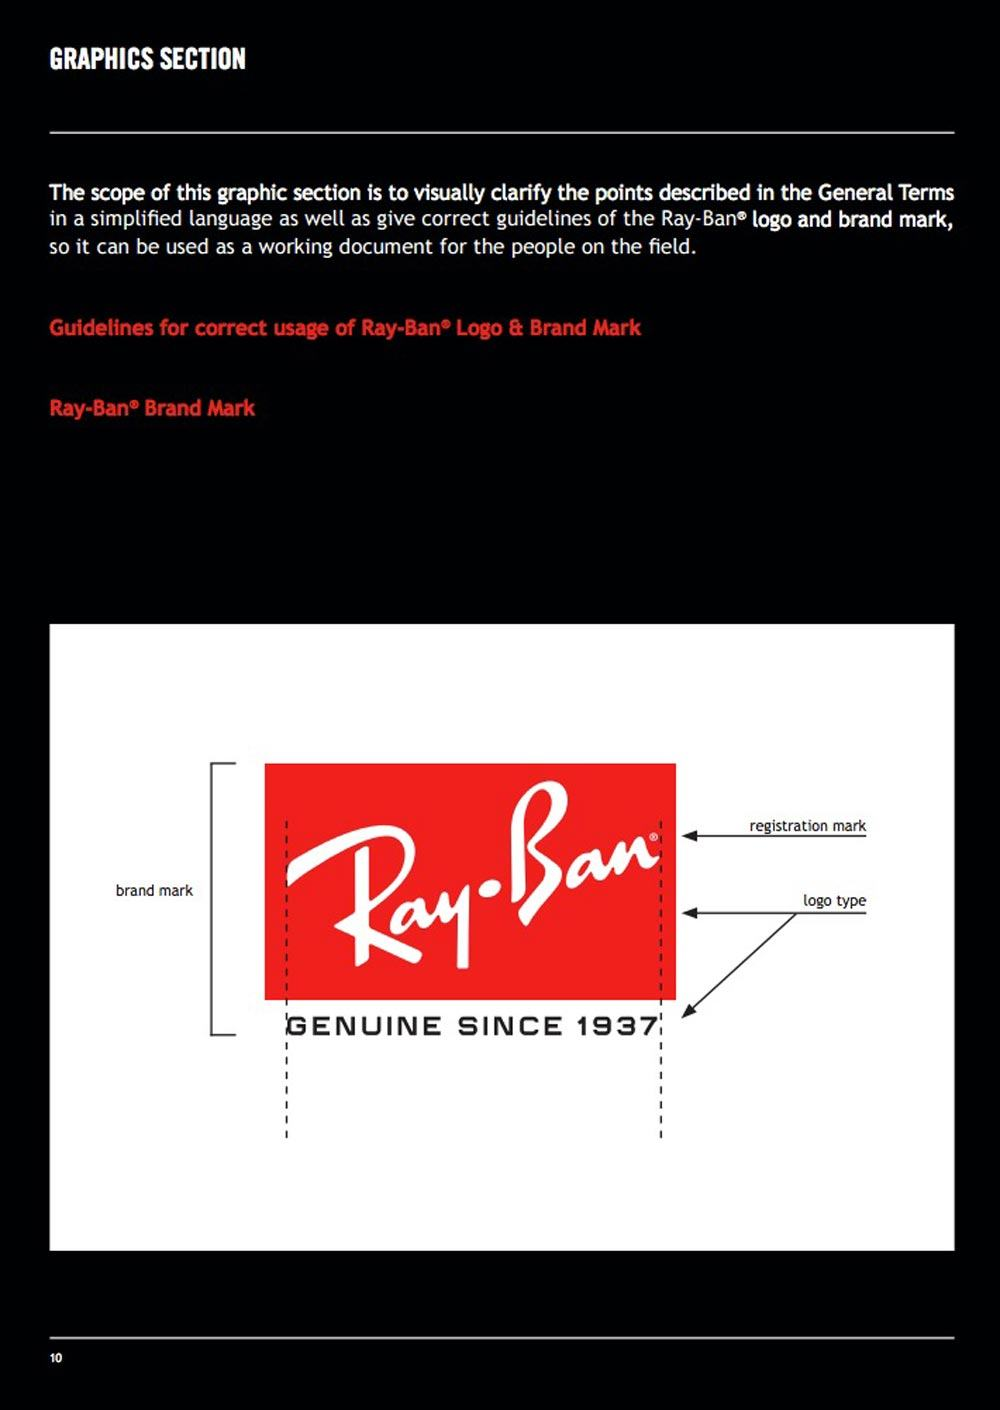 Ray-Ban Guidelines